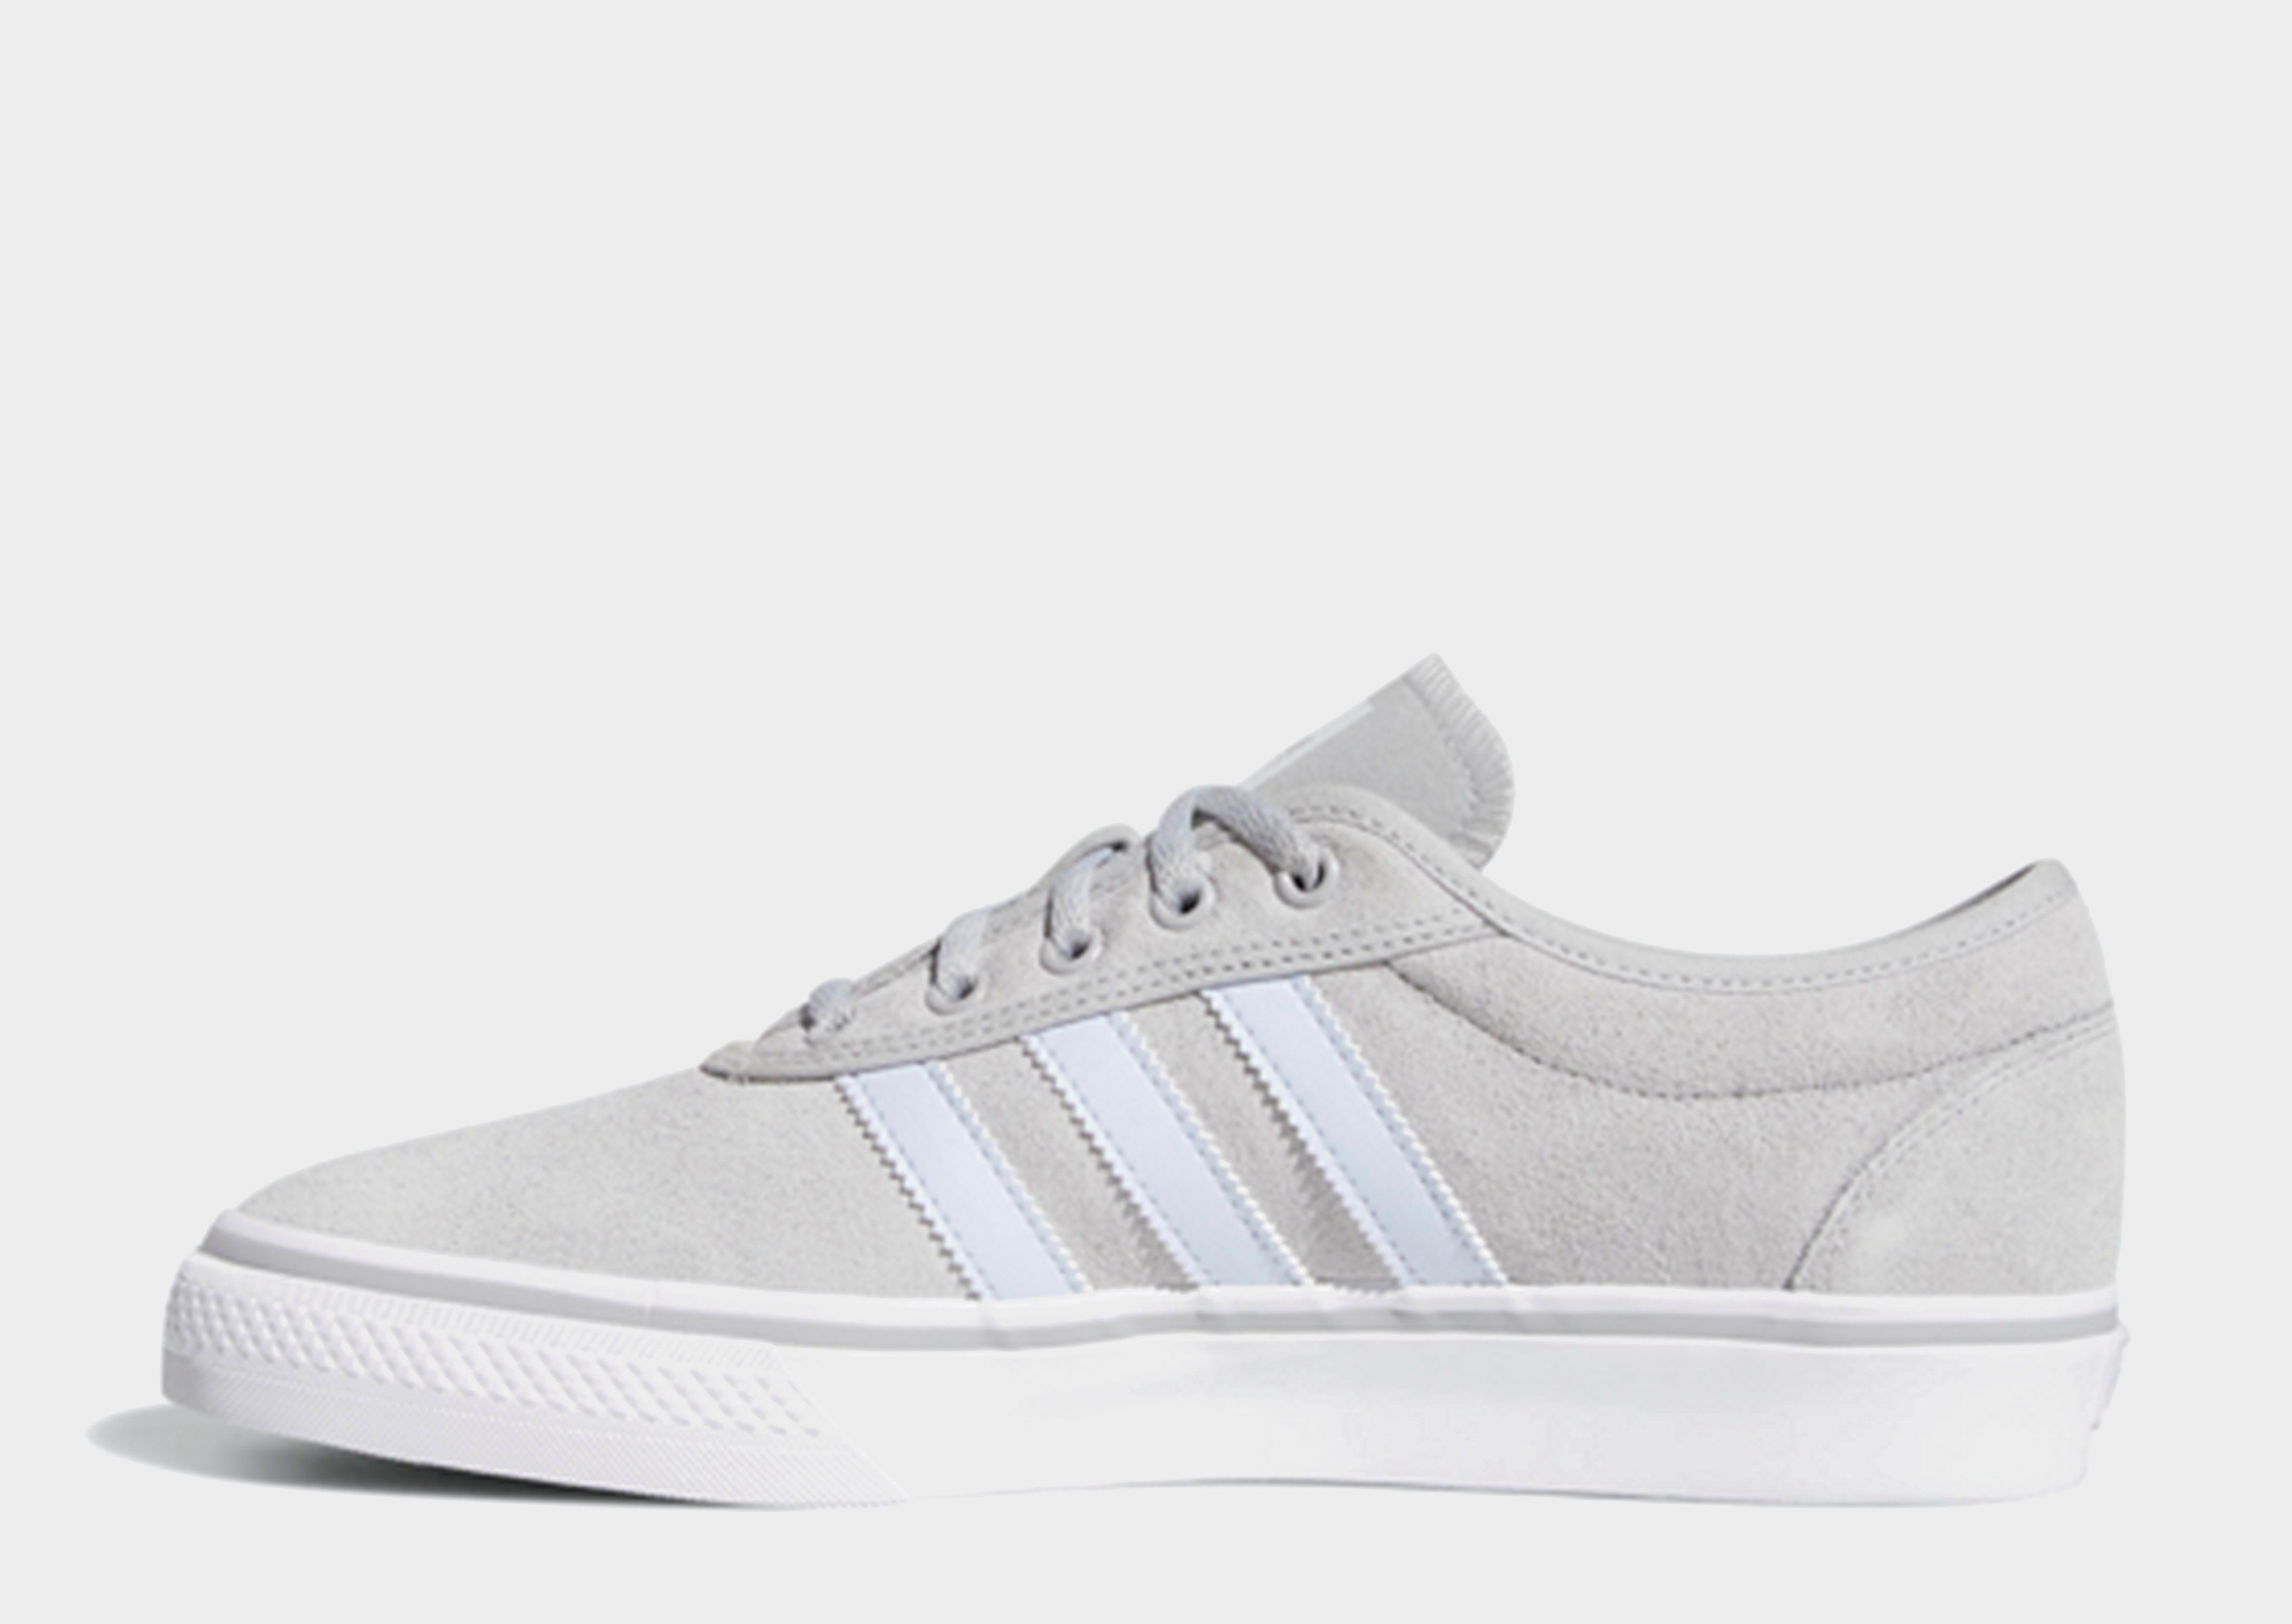 promo code 1cdf1 fc414 ADIDAS adiease Shoes   JD Sports